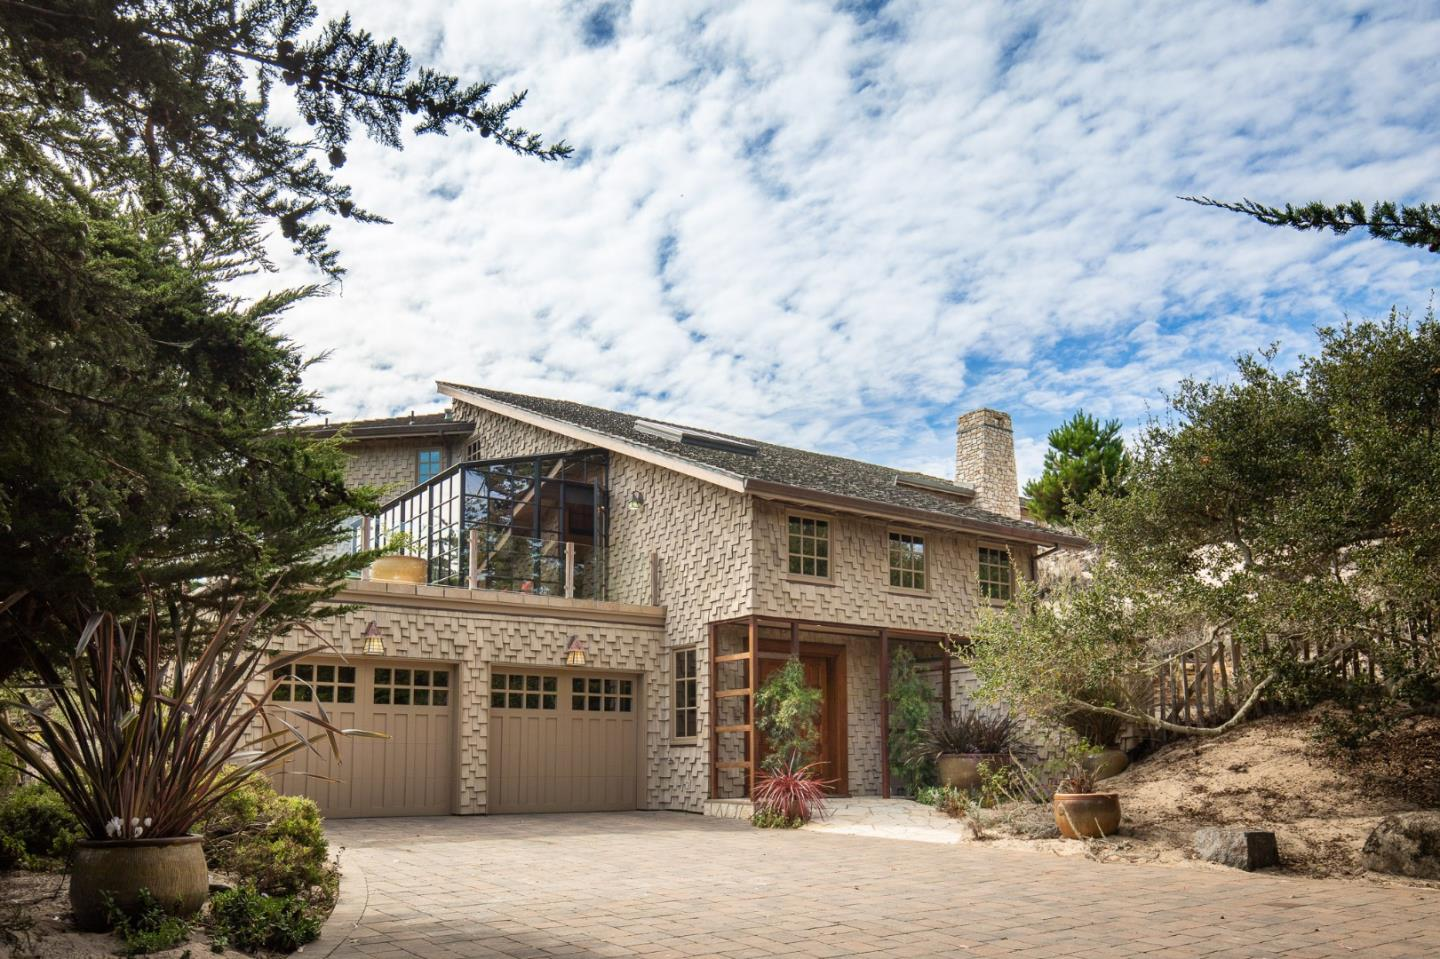 Property for sale at Asilomar BLVD, Pacific Grove,  CA 93950